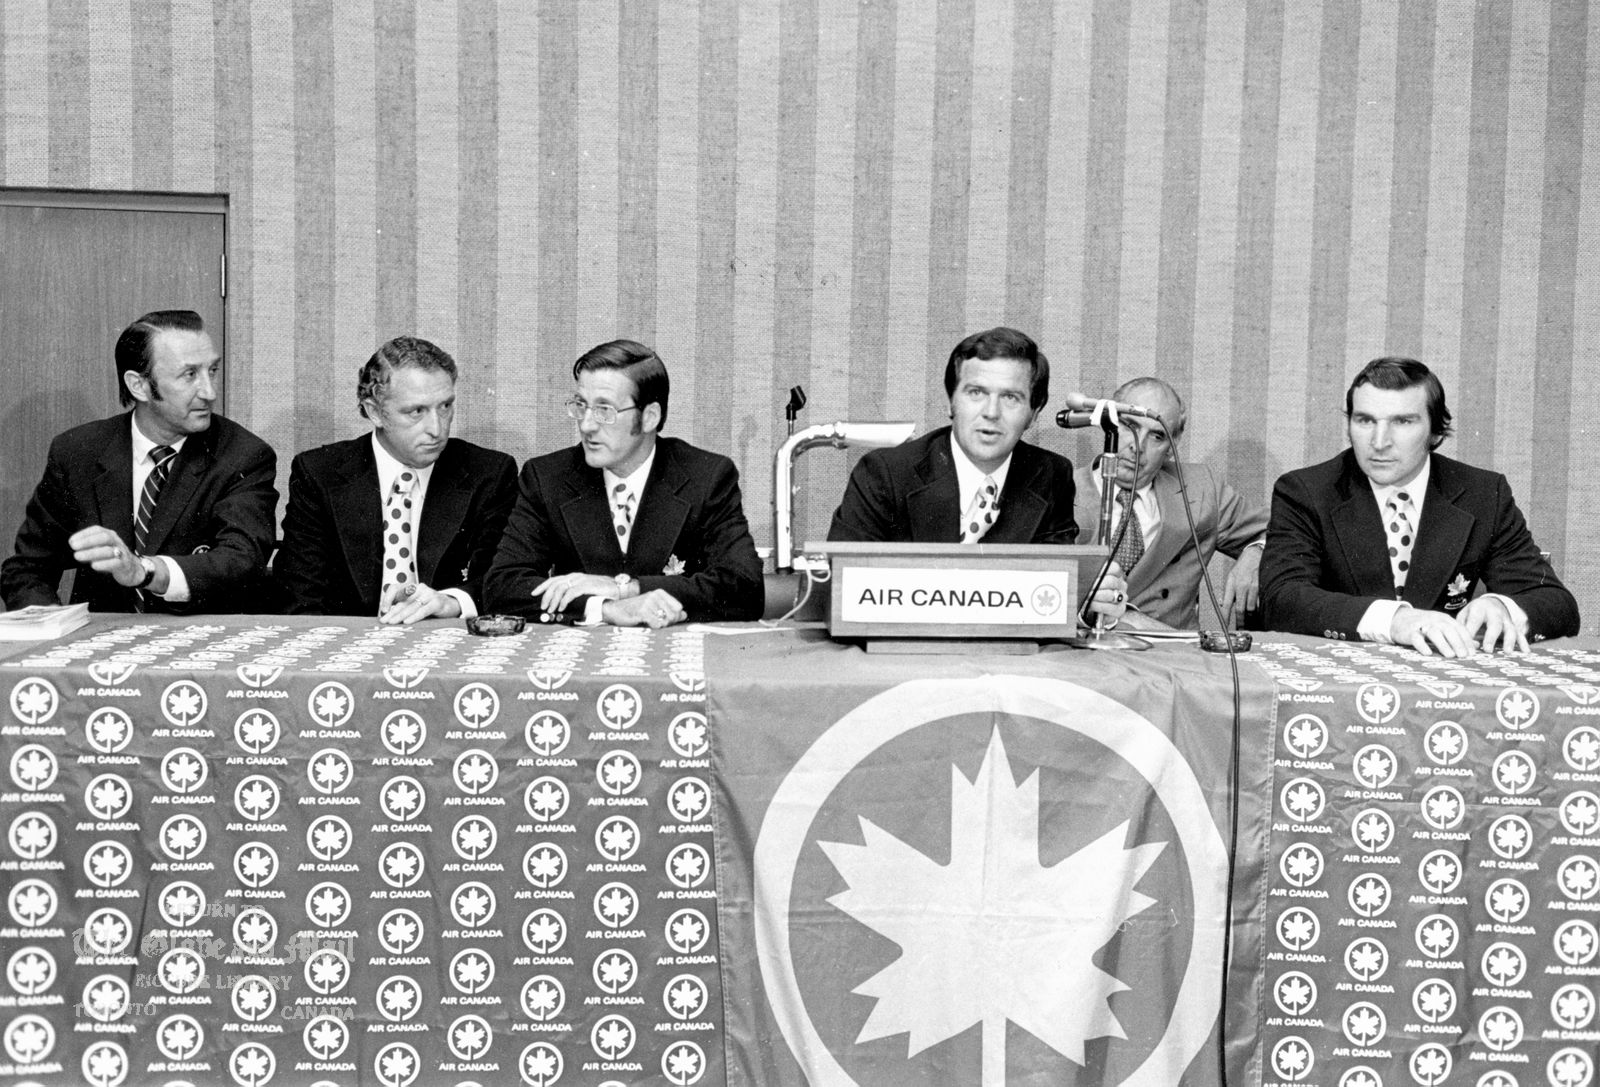 The notes transcribed from the back of this photograph are as follows: JULY 17, 1972 -- TEAM CANADA TV ARRANGEMENTS -- Team Canada officials gather in Toronto on July 17, 1972 to make announcement concerning television arrangements for upcoming Canada-Russia Summit Series. From left, Aggie Kukulowicz, Bob Haggert, Alan Eagleson, head coach Harry Sinden, Arthur Harnett and John Ferguson sit at table sporting Air Canada logos. All but Harnett are due to leave this evening for Russia to complete arrangement for the games at Moscow. The series is set to start in Montreal on Sept. 2, 1972. Photo by Tibor Kolley / The Globe and Mail. Originally published July 18, 1972